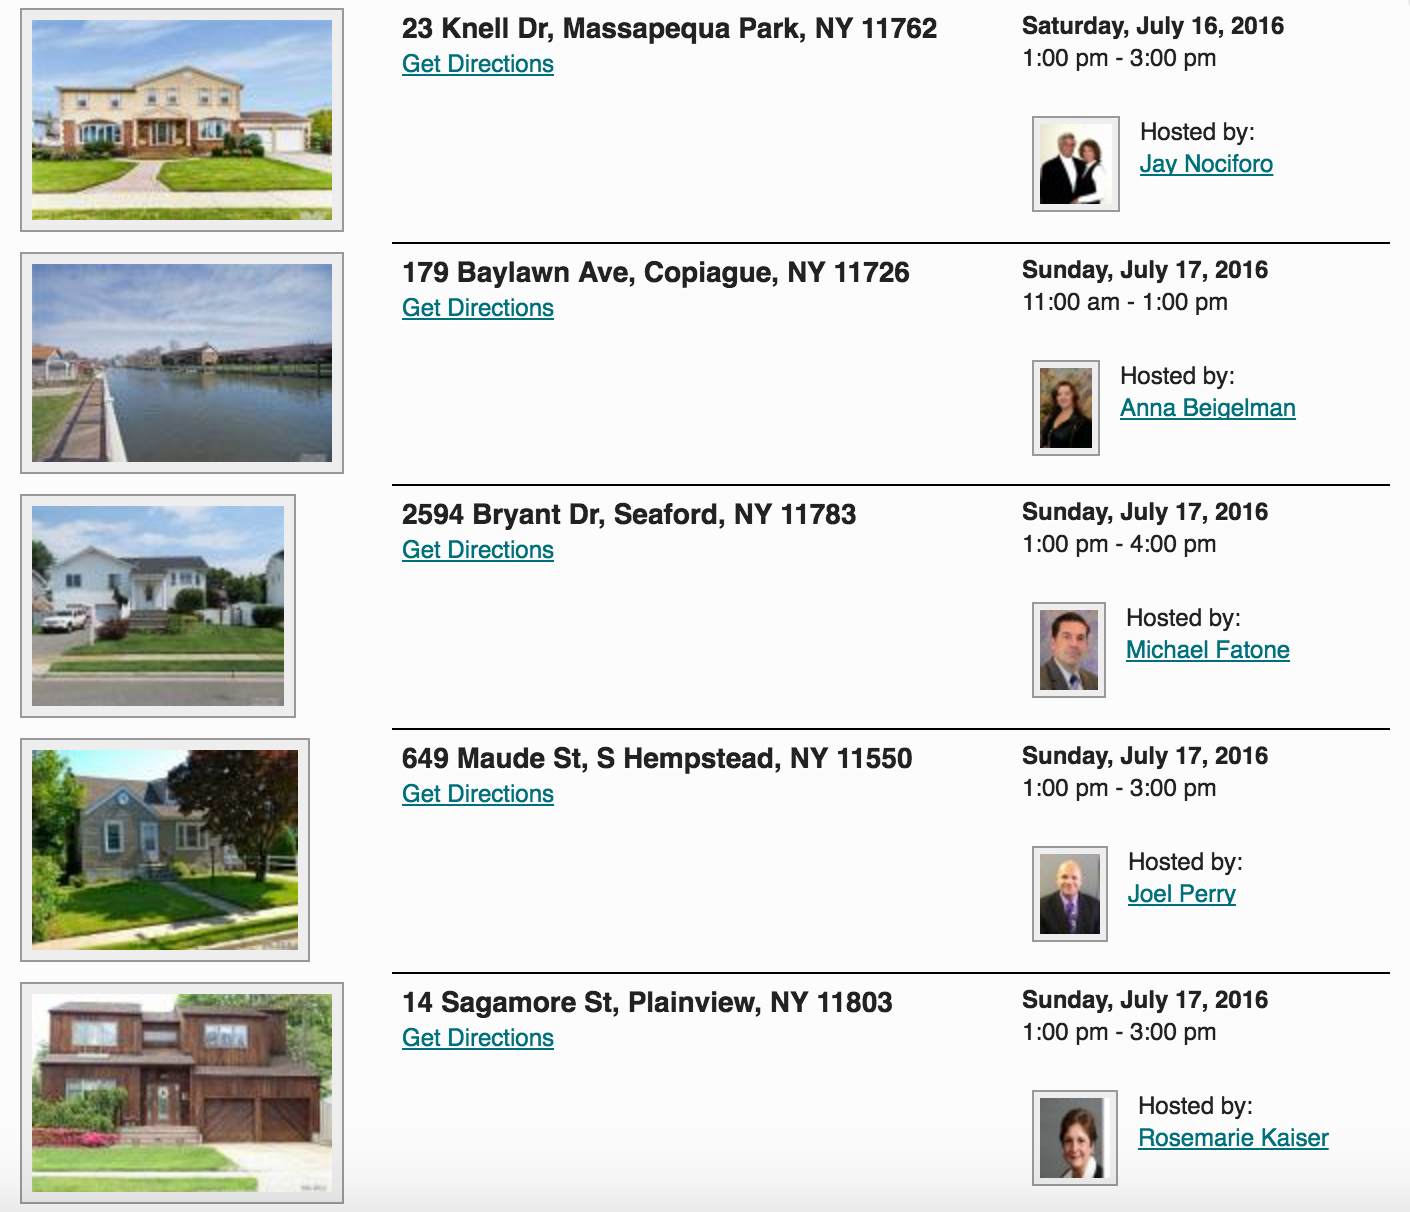 Open Houses This Weekend in Massapequa Park! 7/16 & 7/17